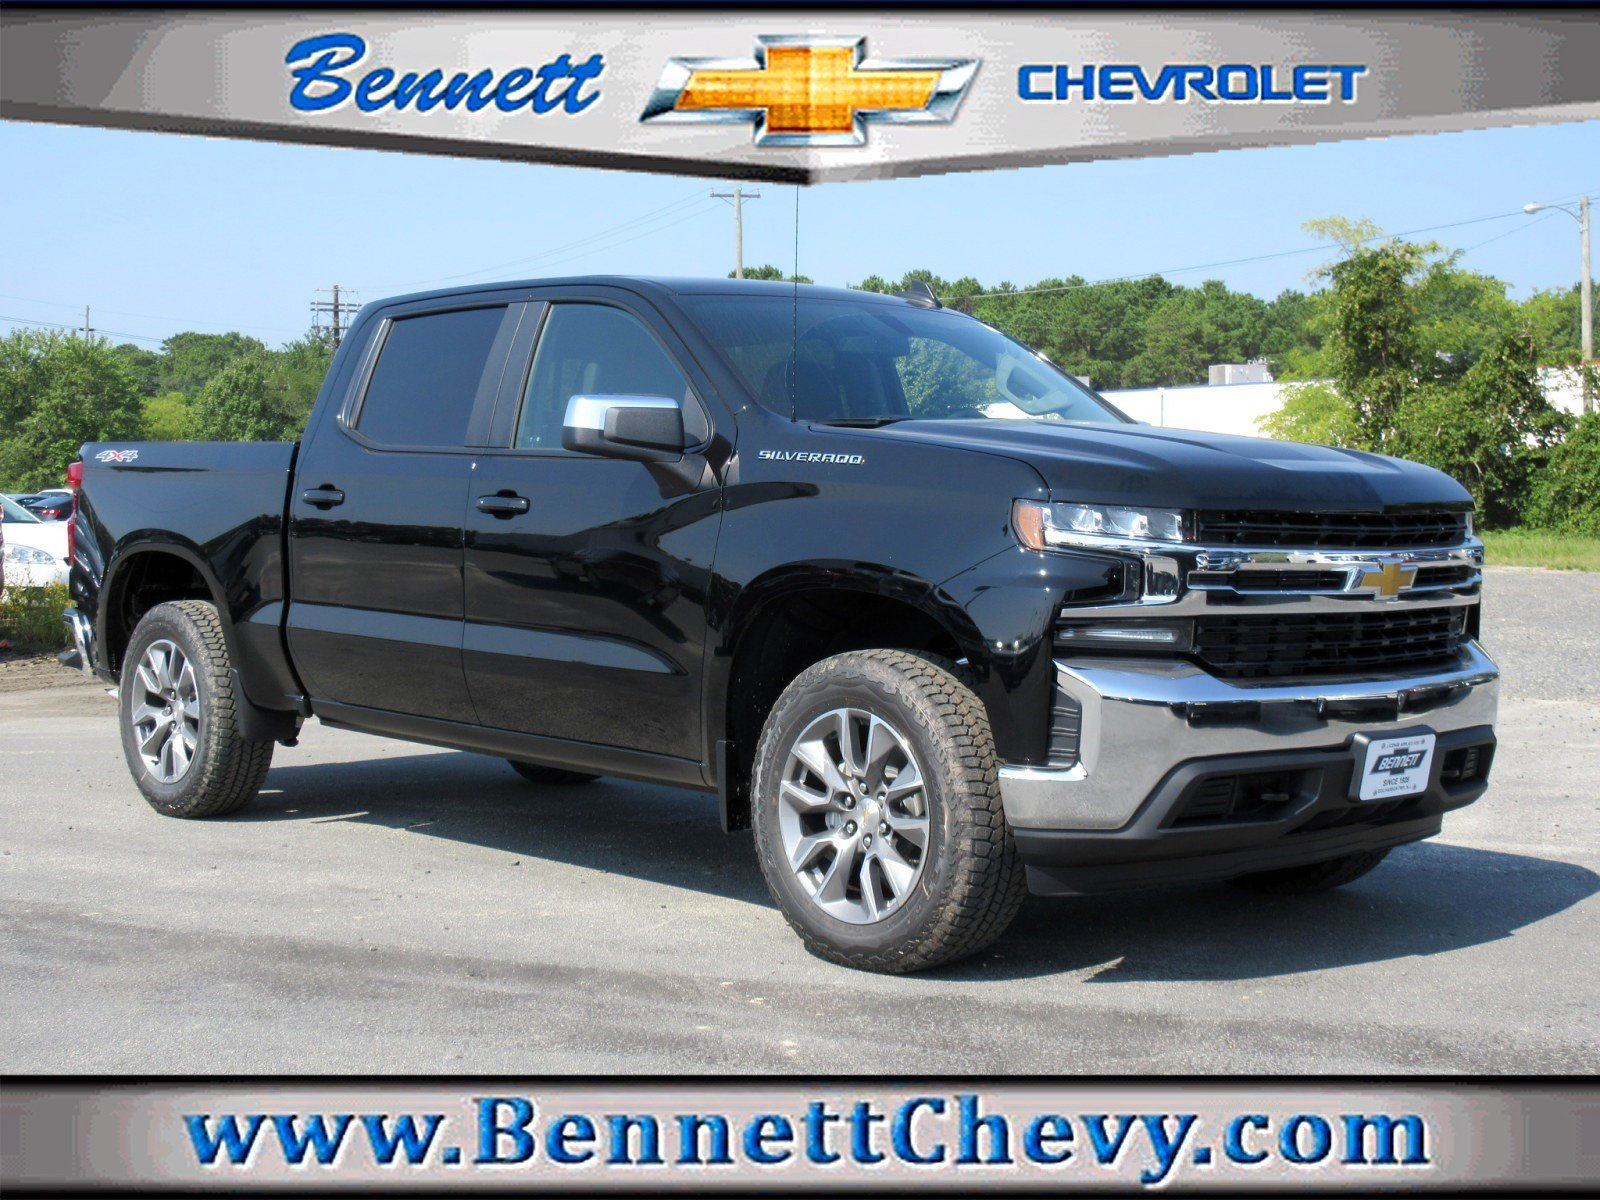 New 2019 Chevrolet Silverado 1500 Lt Crew Cab Pickup In Egg Harbor